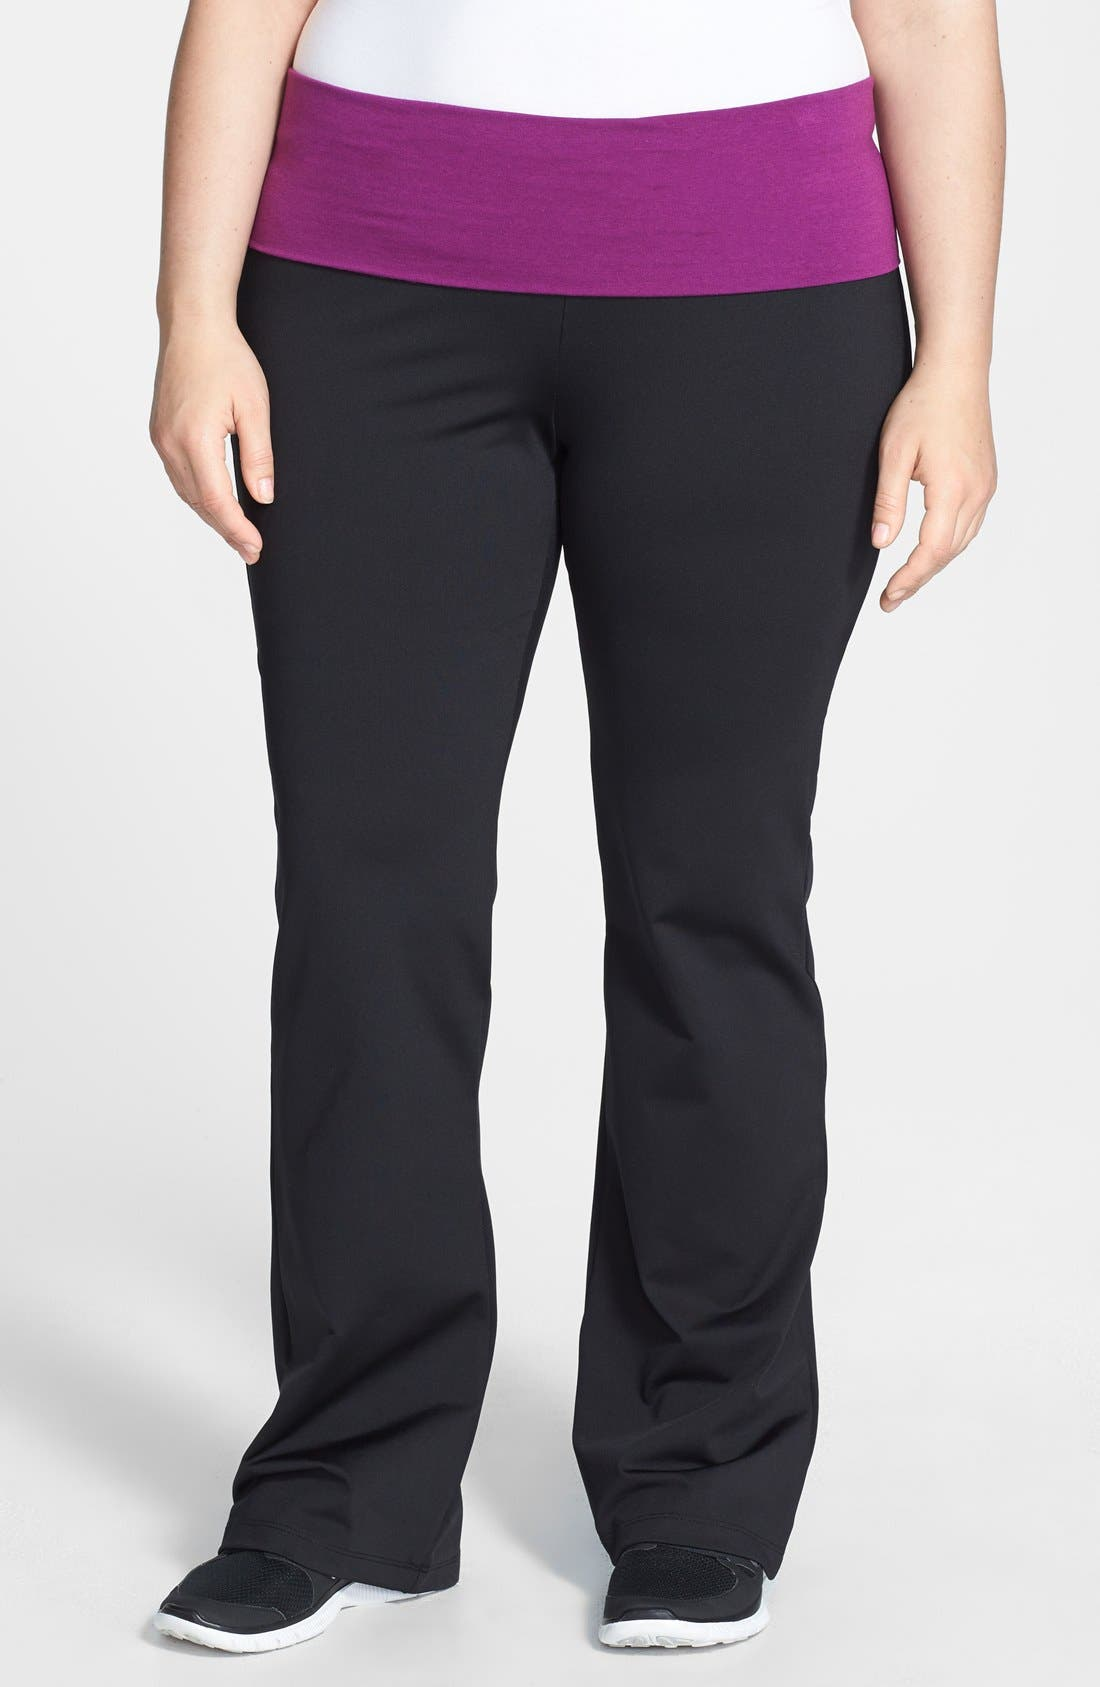 Alternate Image 1 Selected - Pink Lotus Compression Yoga Pants (Plus Size)